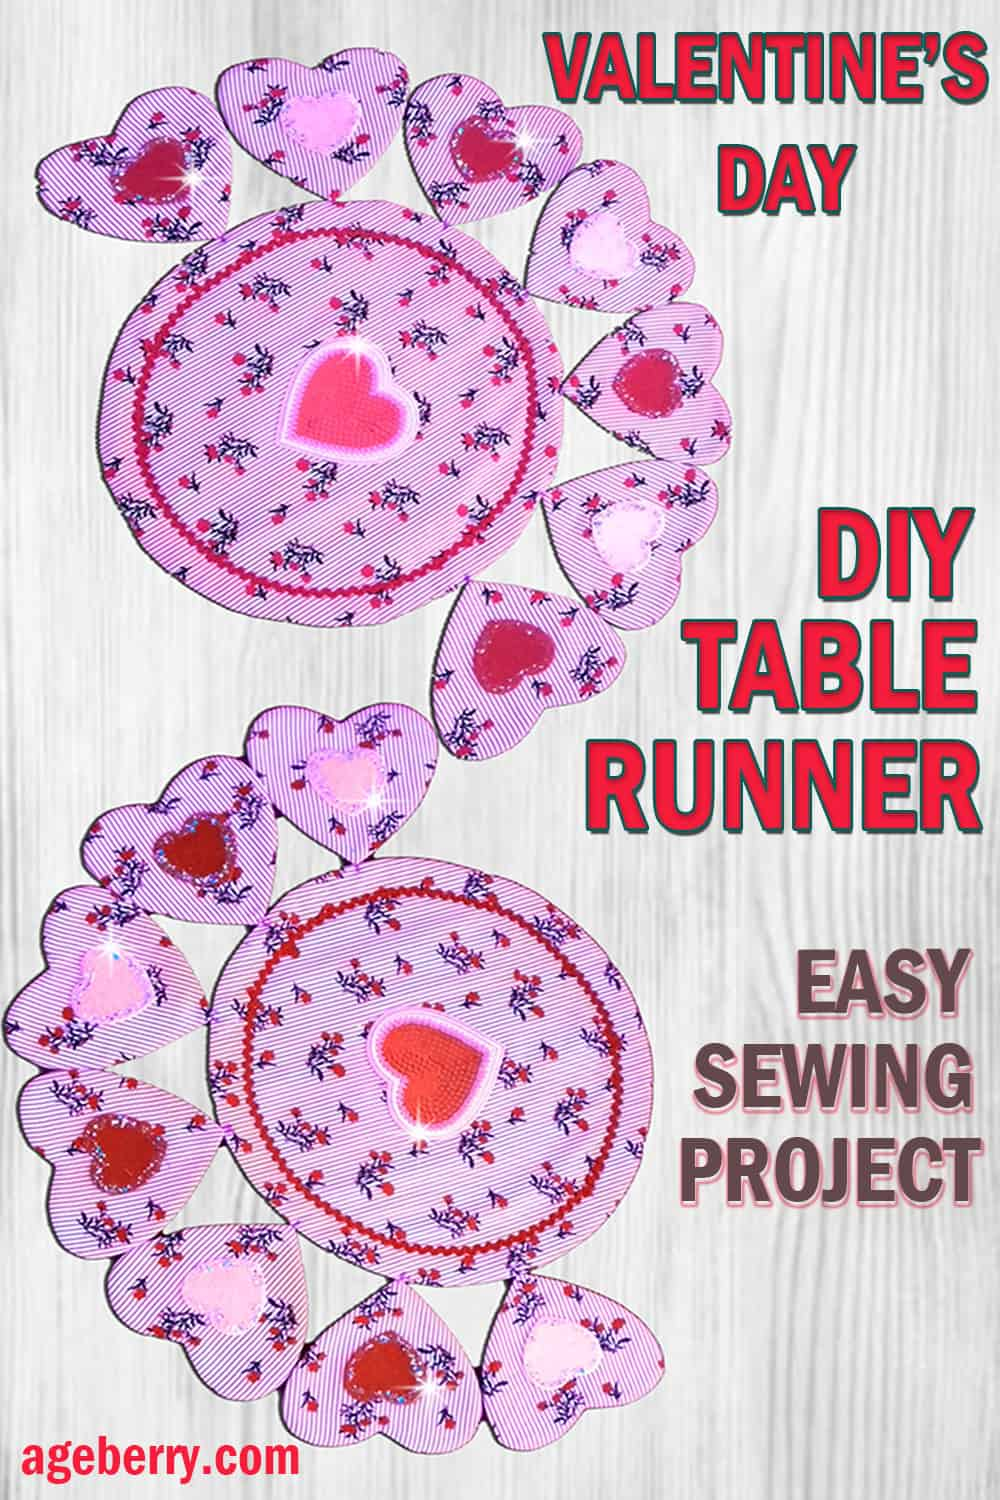 Valentine sewing project